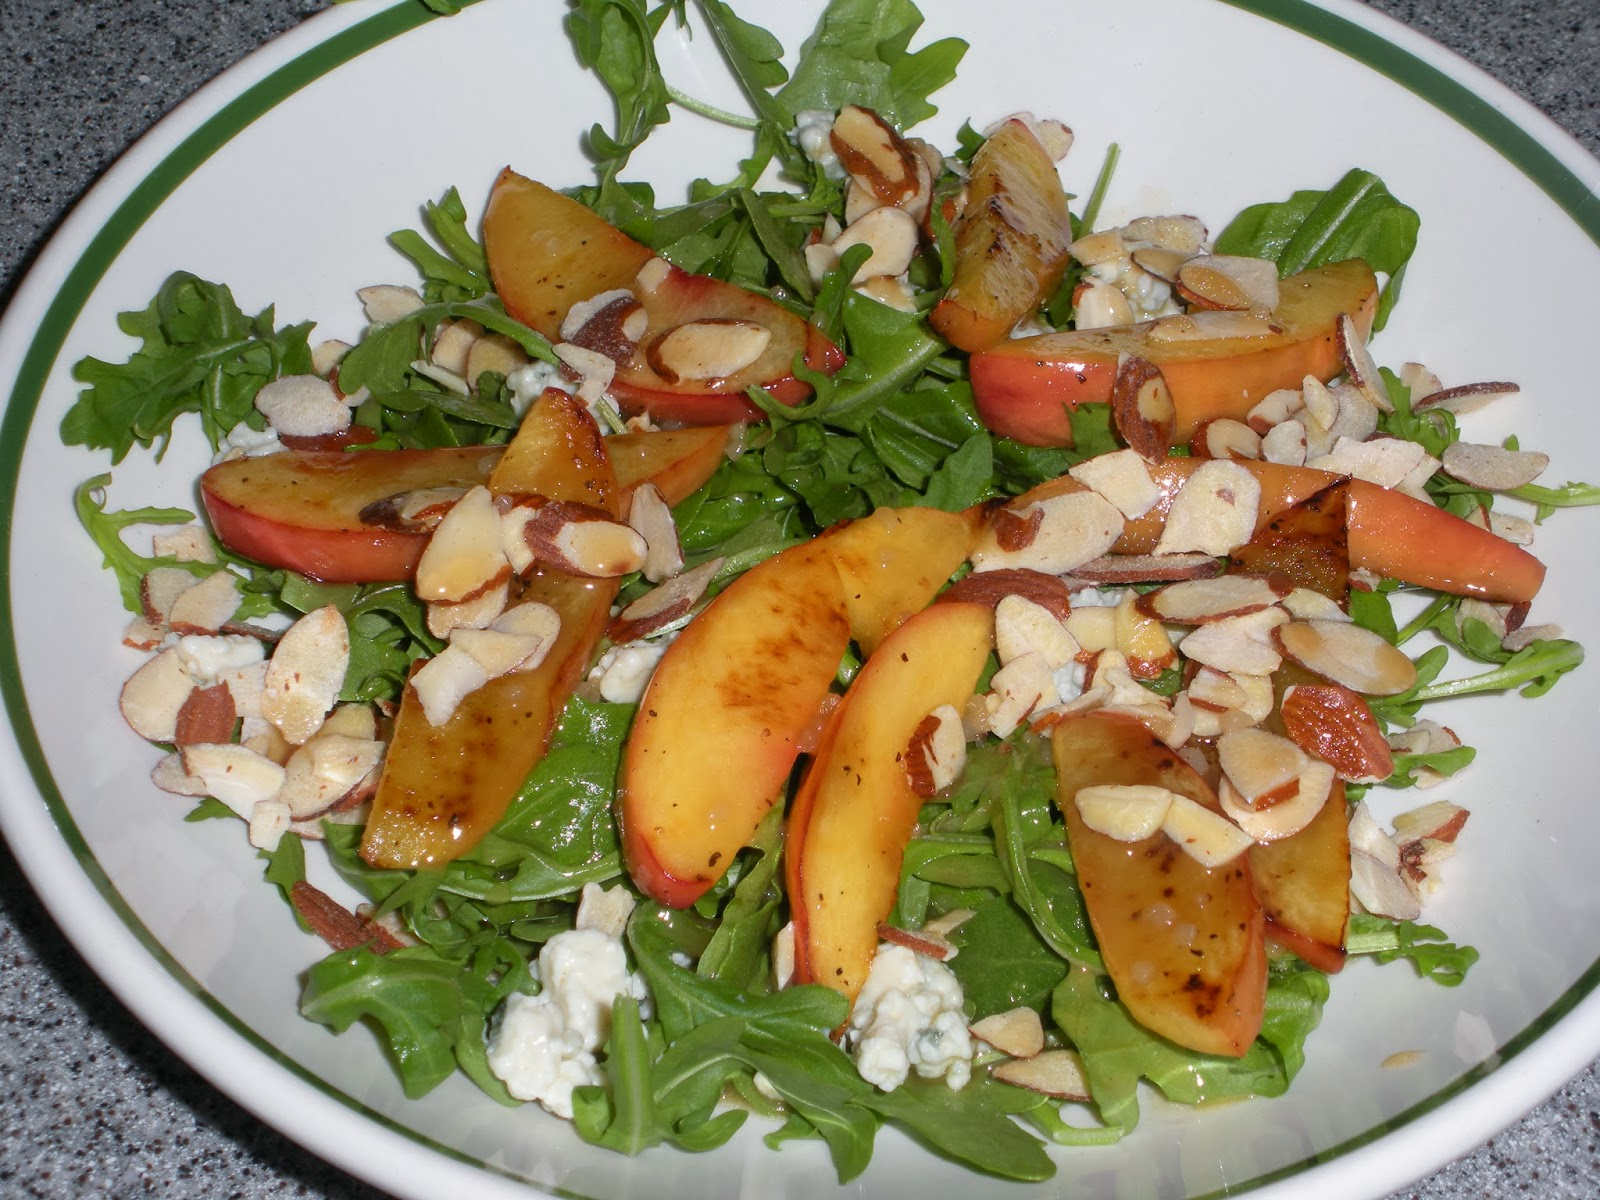 NOT A REAL HOUSEWIFE: Nectarine and Blue Cheese Salad